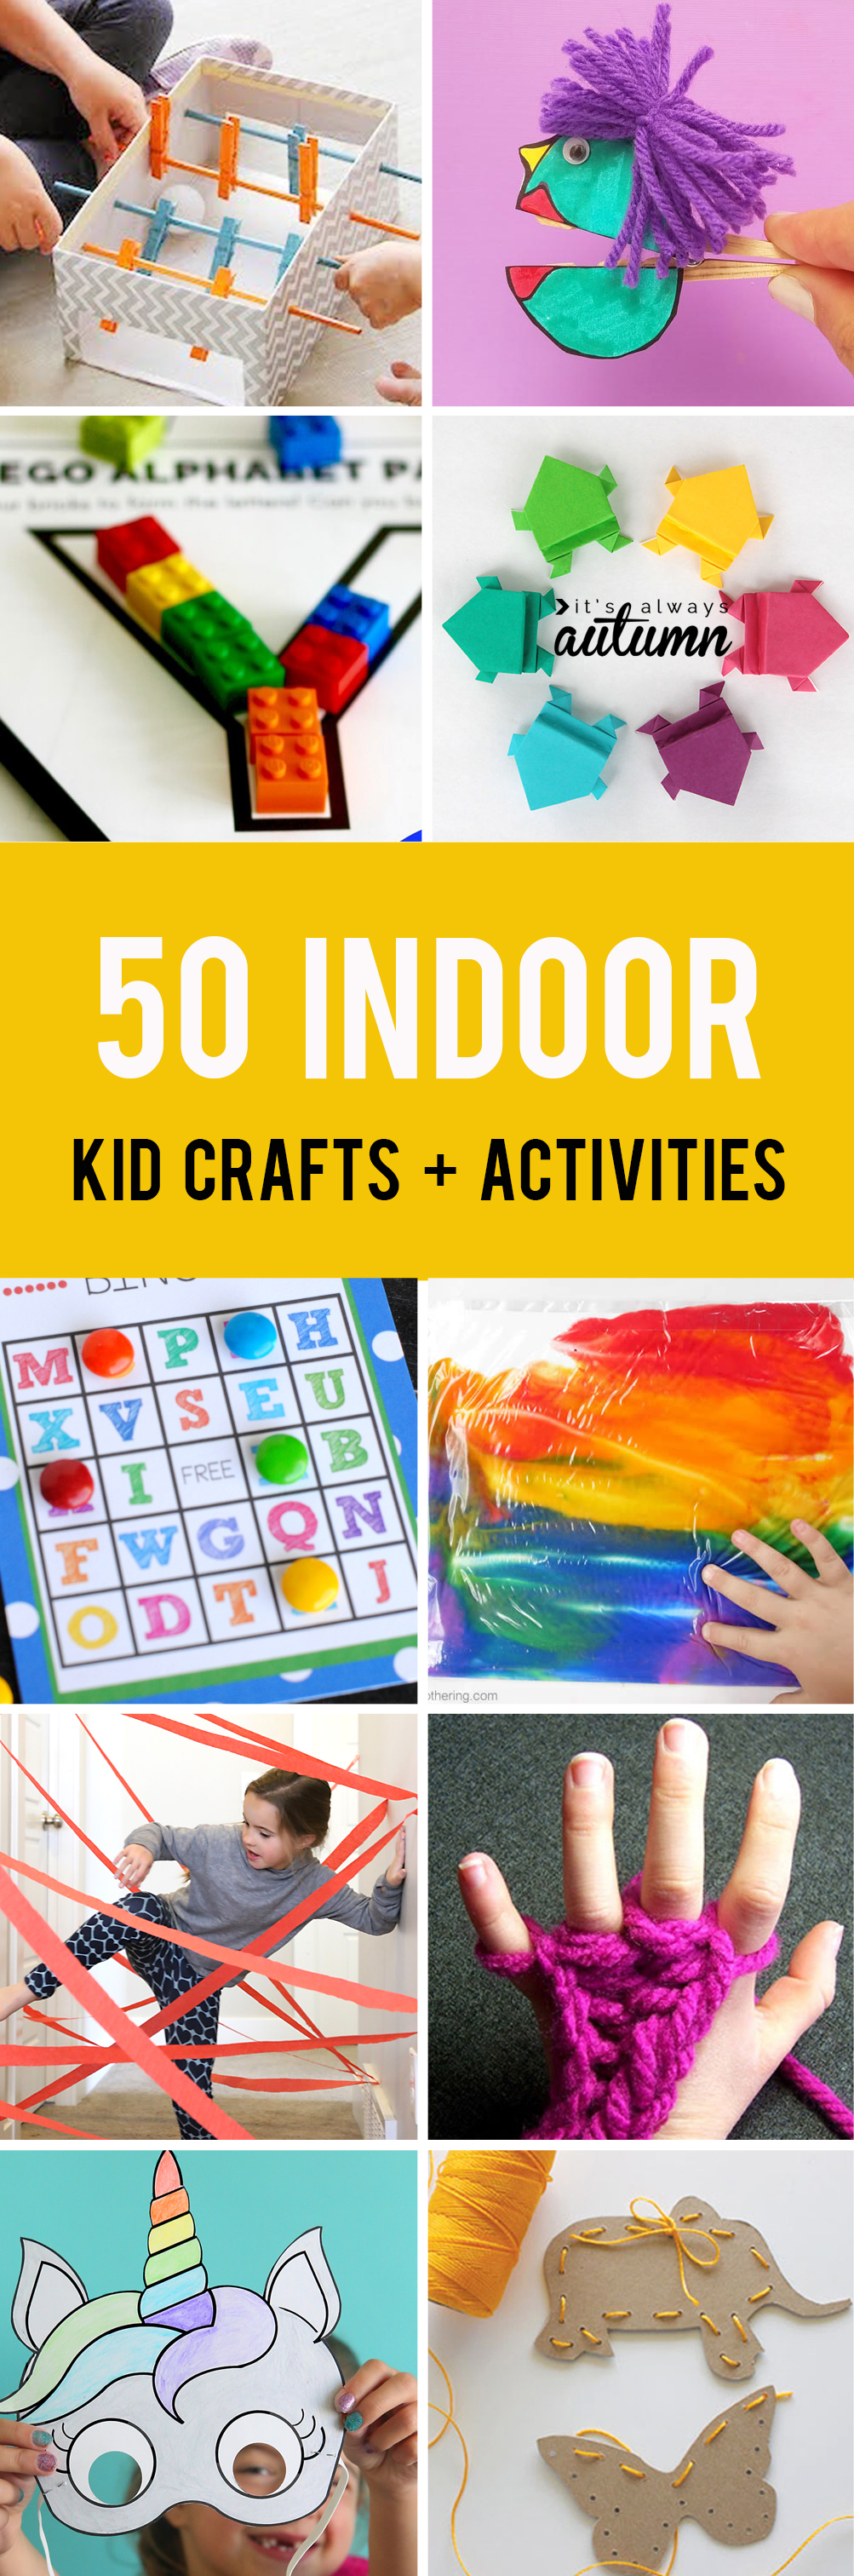 50 easy crafts and activities kids can do indoors! Perfect for cold or rainy days.